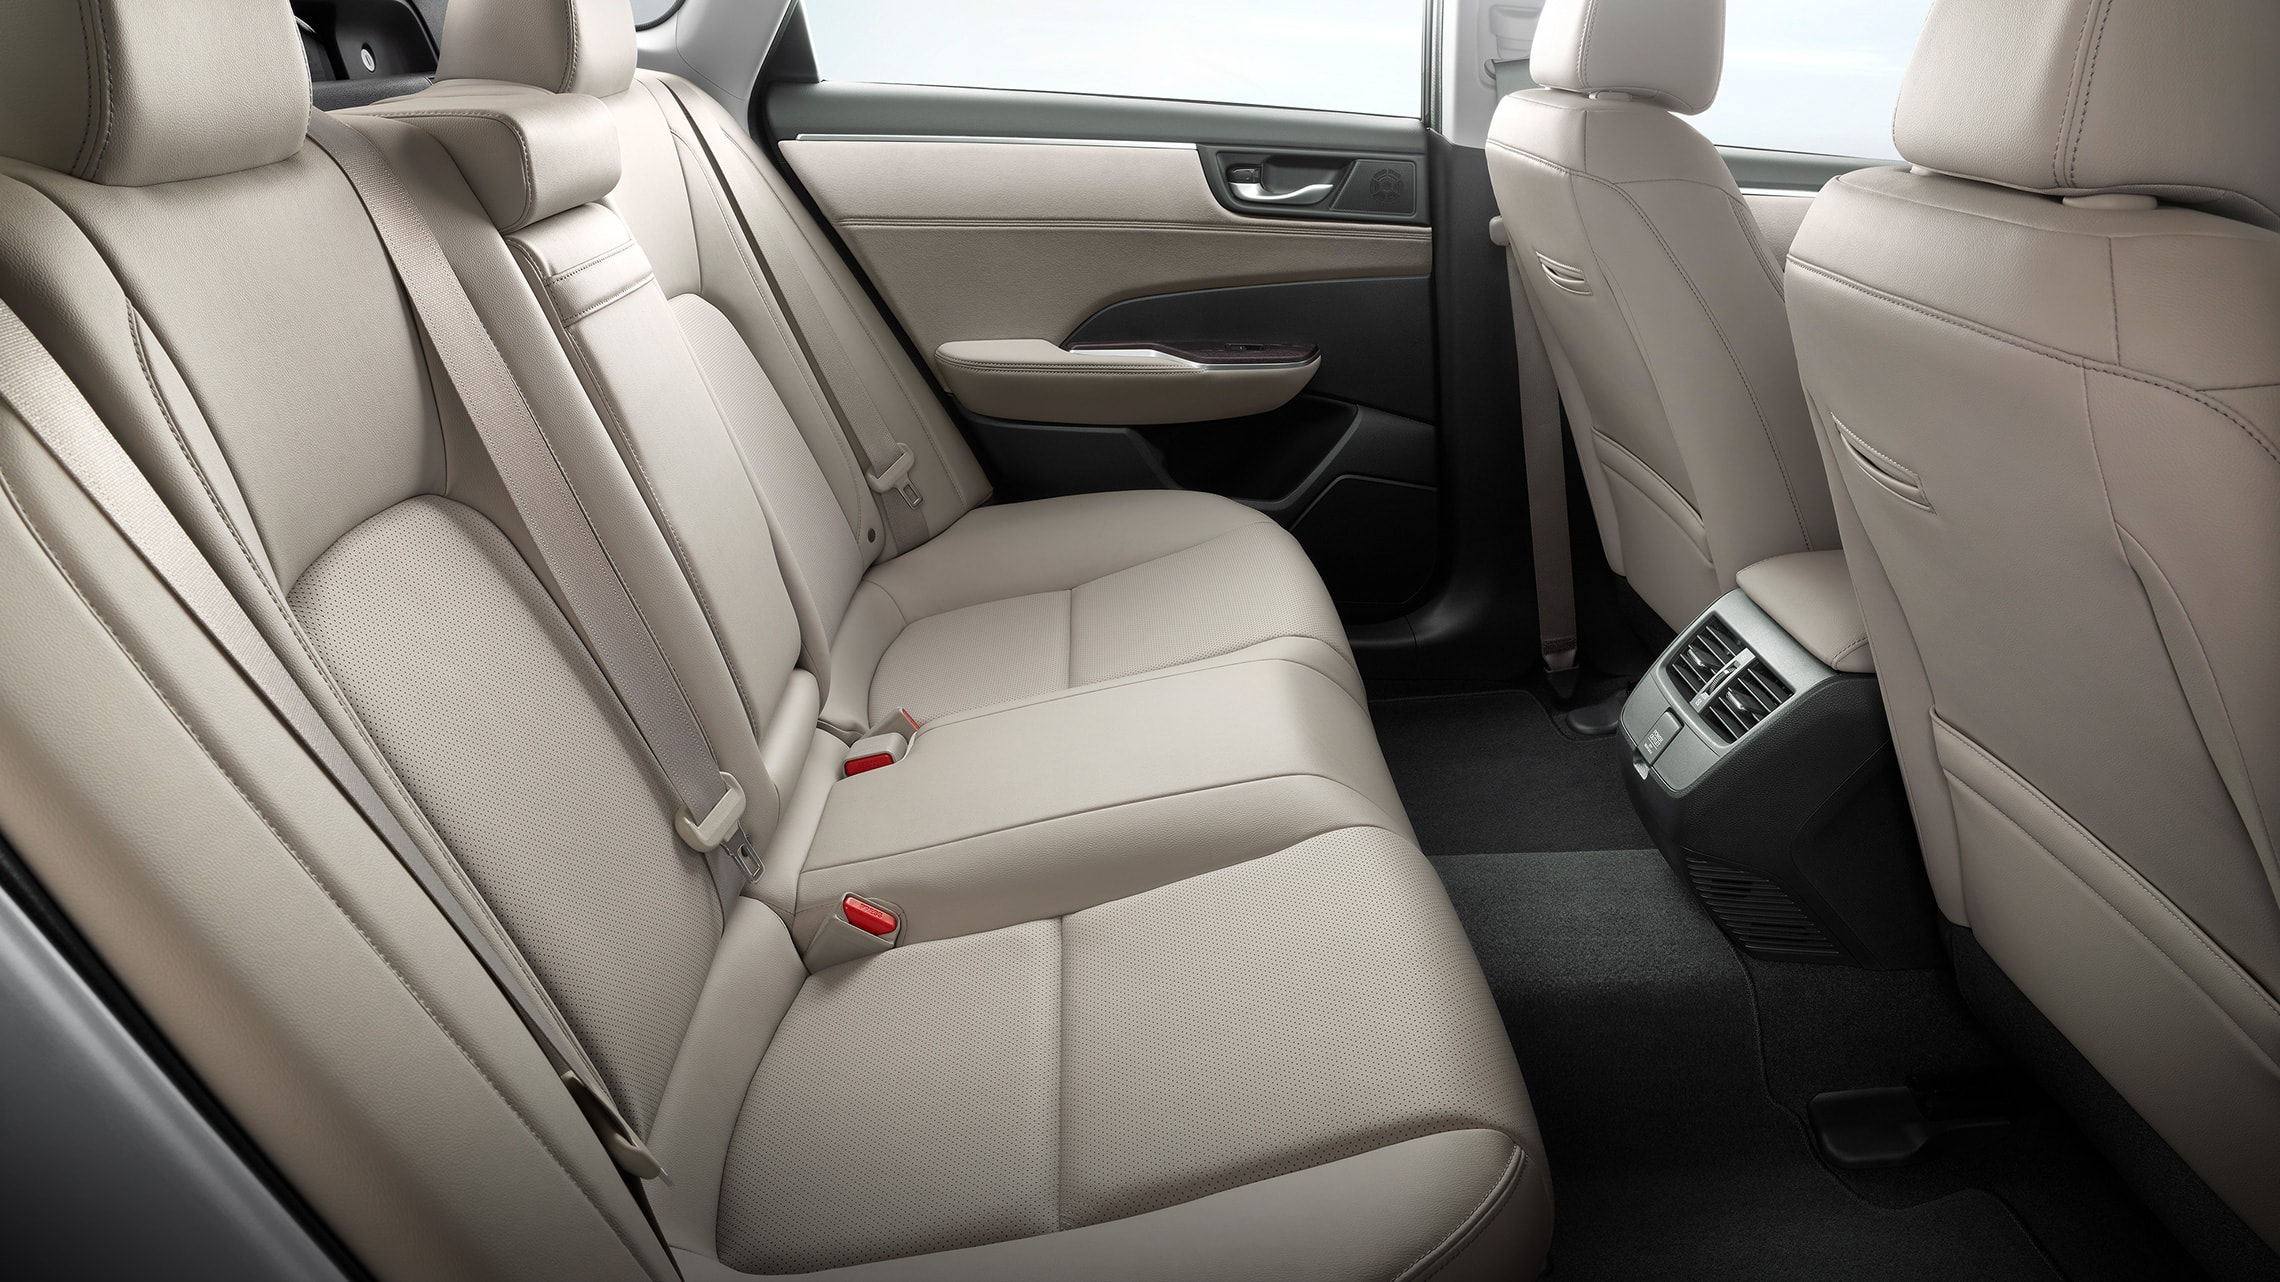 Rear seats of 2021 Clarity Plug-In Hybrid with Beige Leather-trimmed interior.